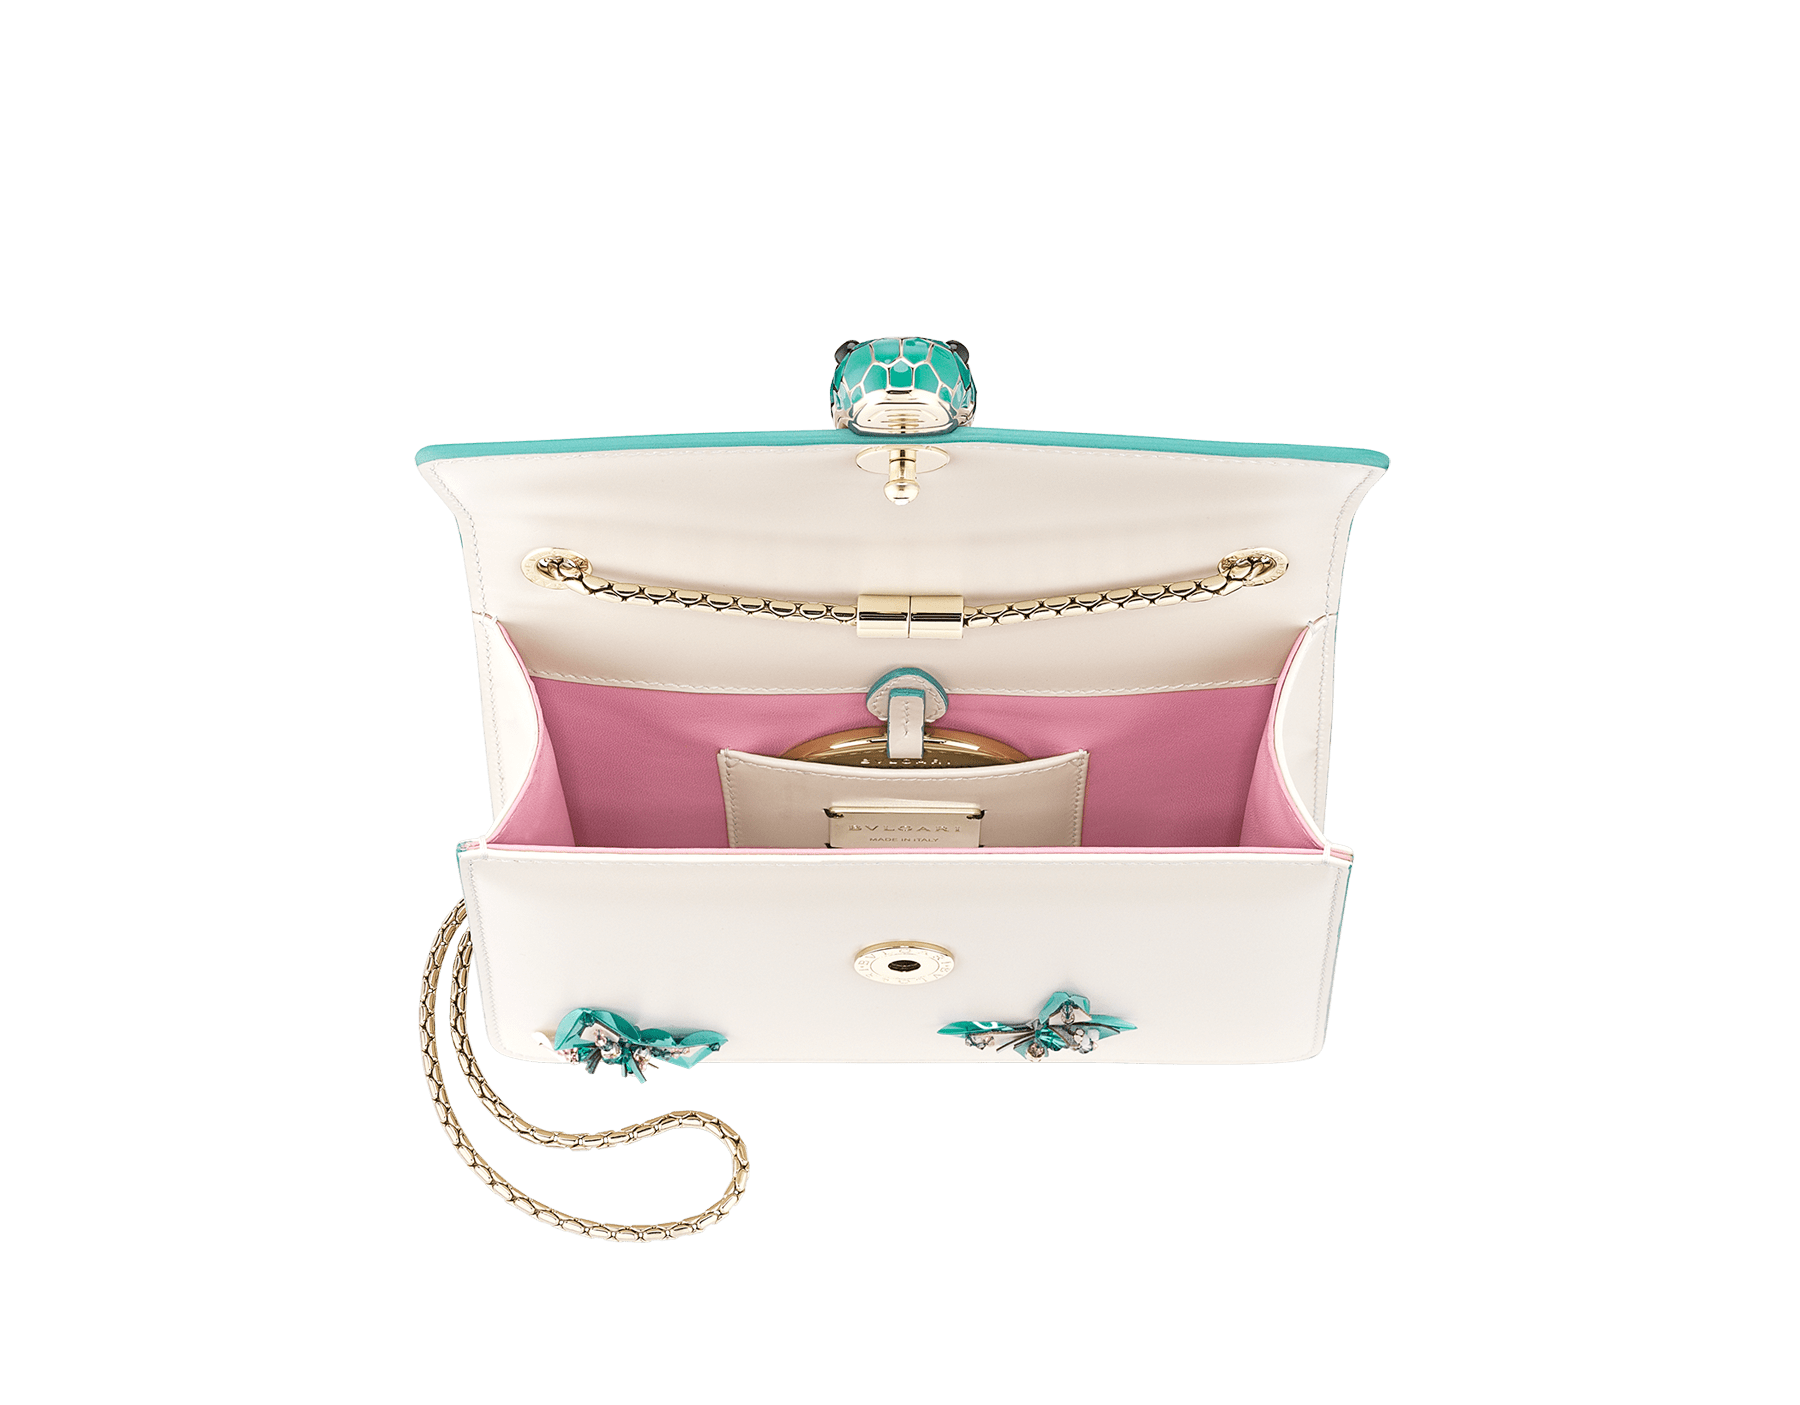 """Serpenti Forever"" crossbody bag in white agate calf leather with two arctic jade butterflies embroidered. Iconic snakehead closure in light gold plated brass enriched with arctic jade and white agate enamel and black onyx eyes. 289247 image 4"